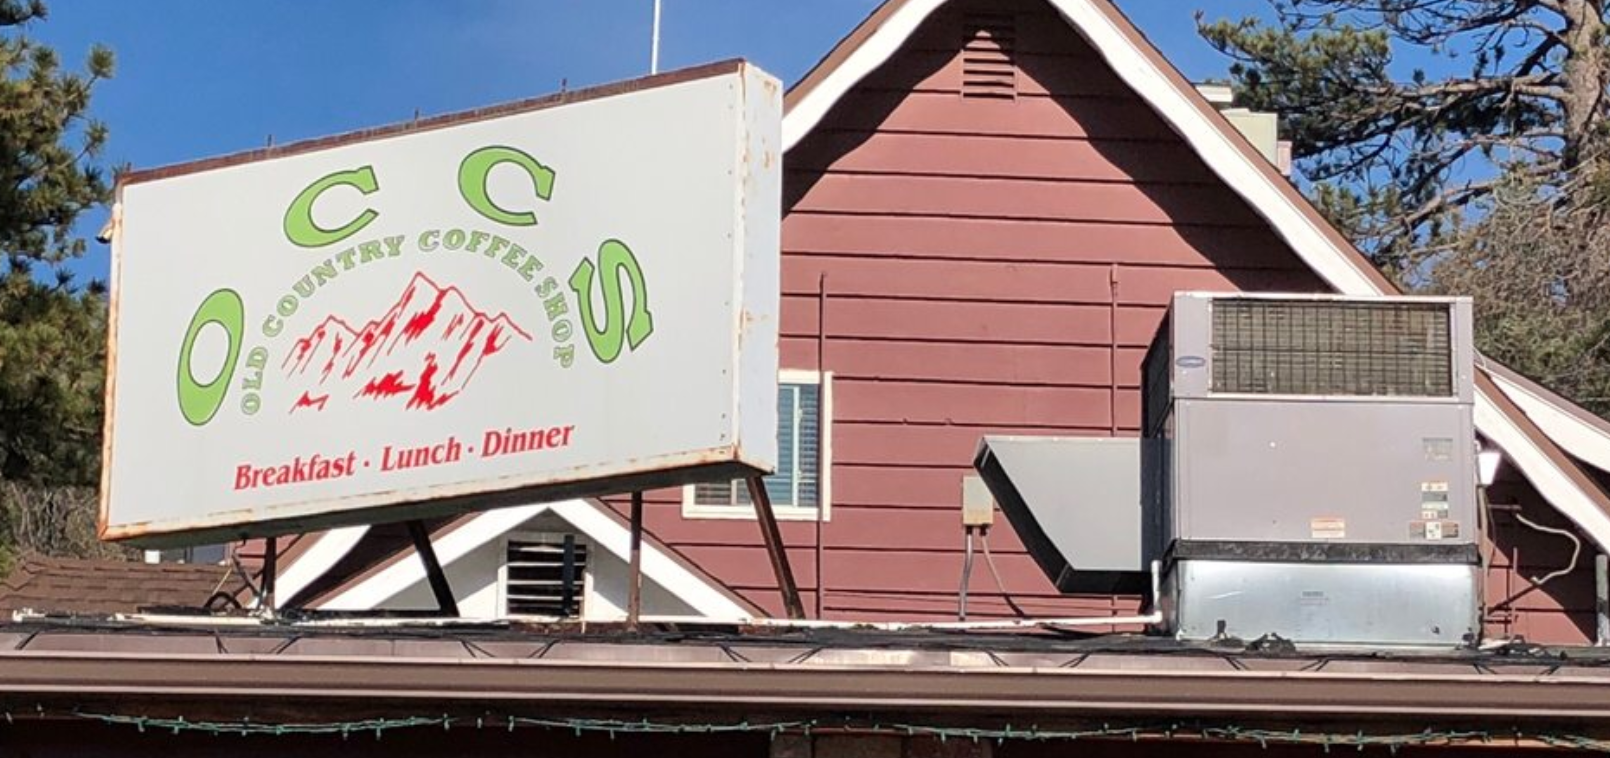 Old Country Coffee Shop and Diner (Running Springs, CA)